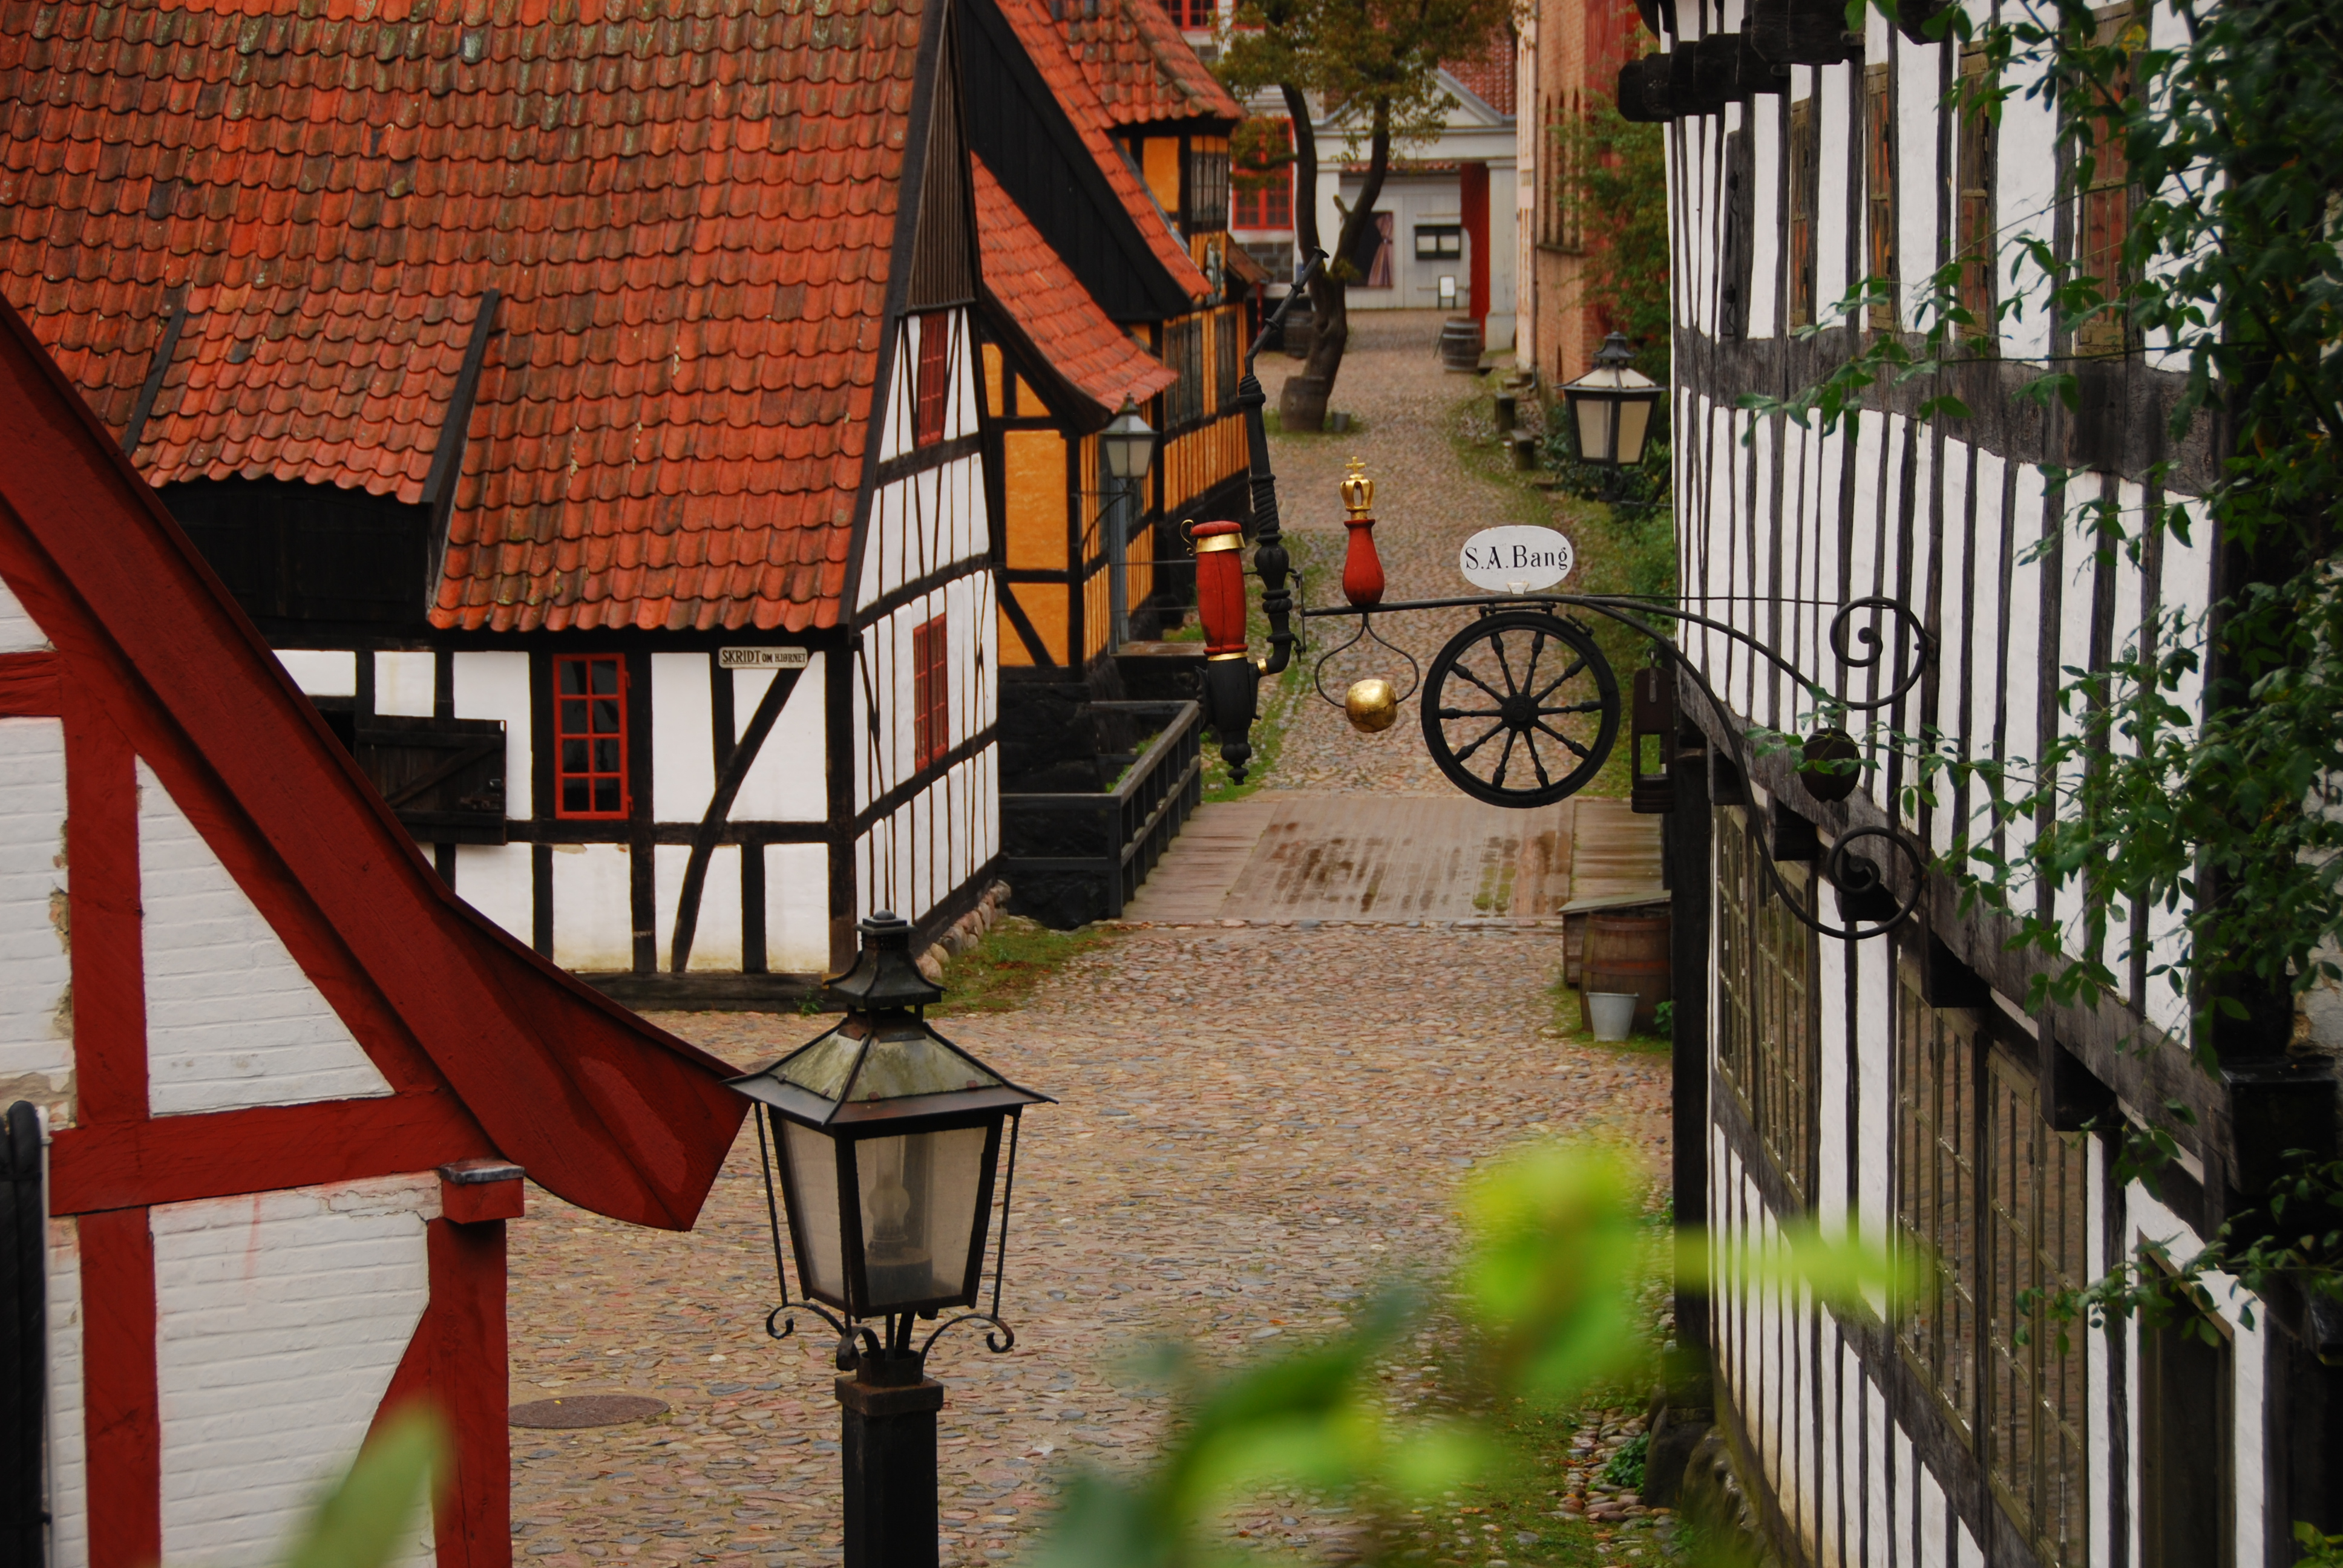 perfekte bryster den gamle by i Odense